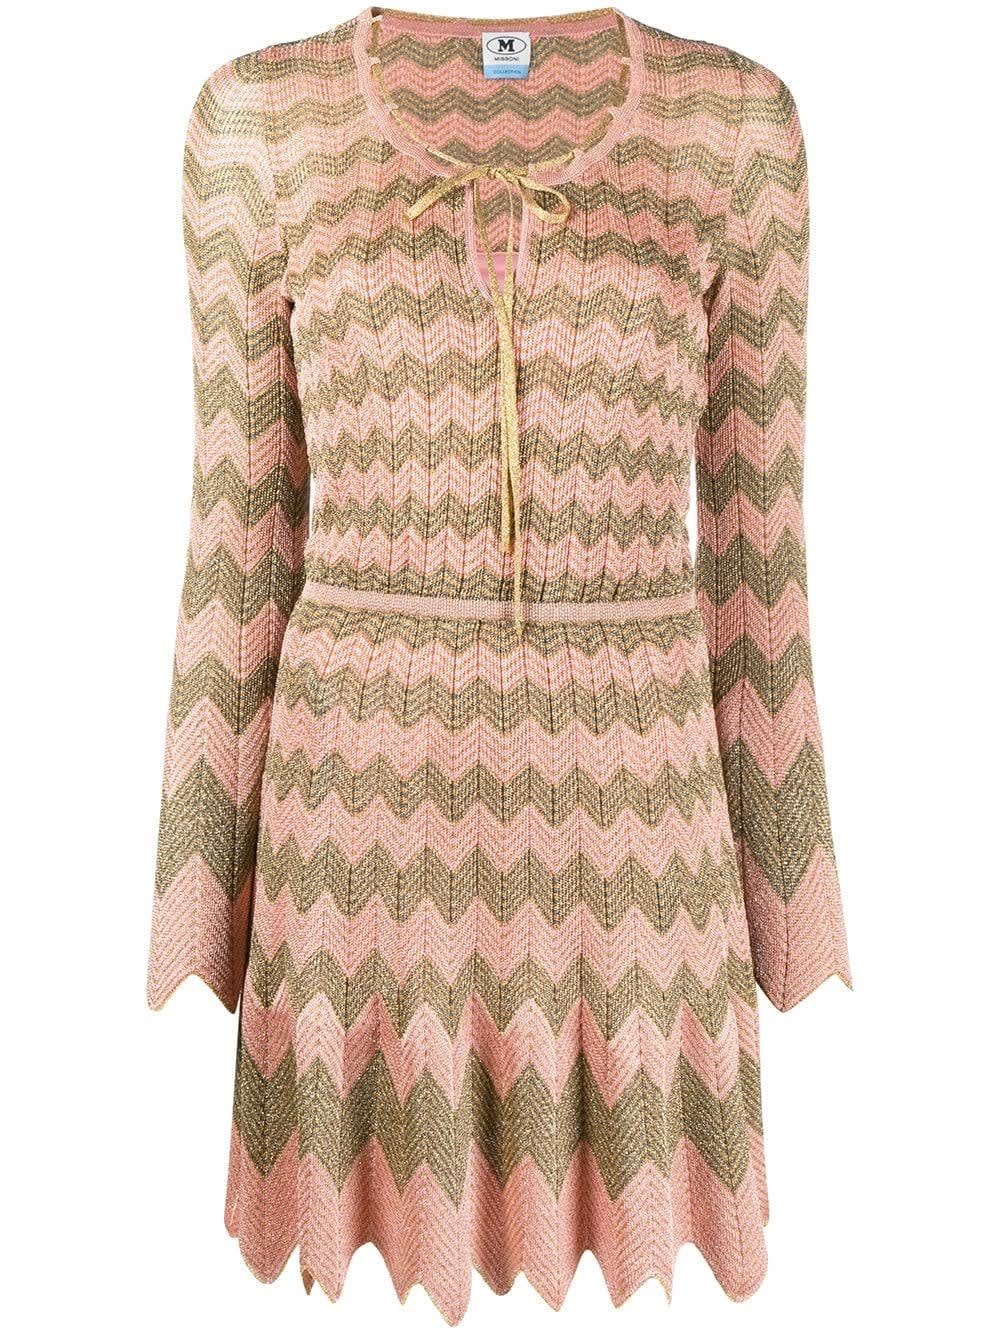 M Missoni Cardigans ZIG ZAG PLEATED DRESS WITH BOW DETAIL